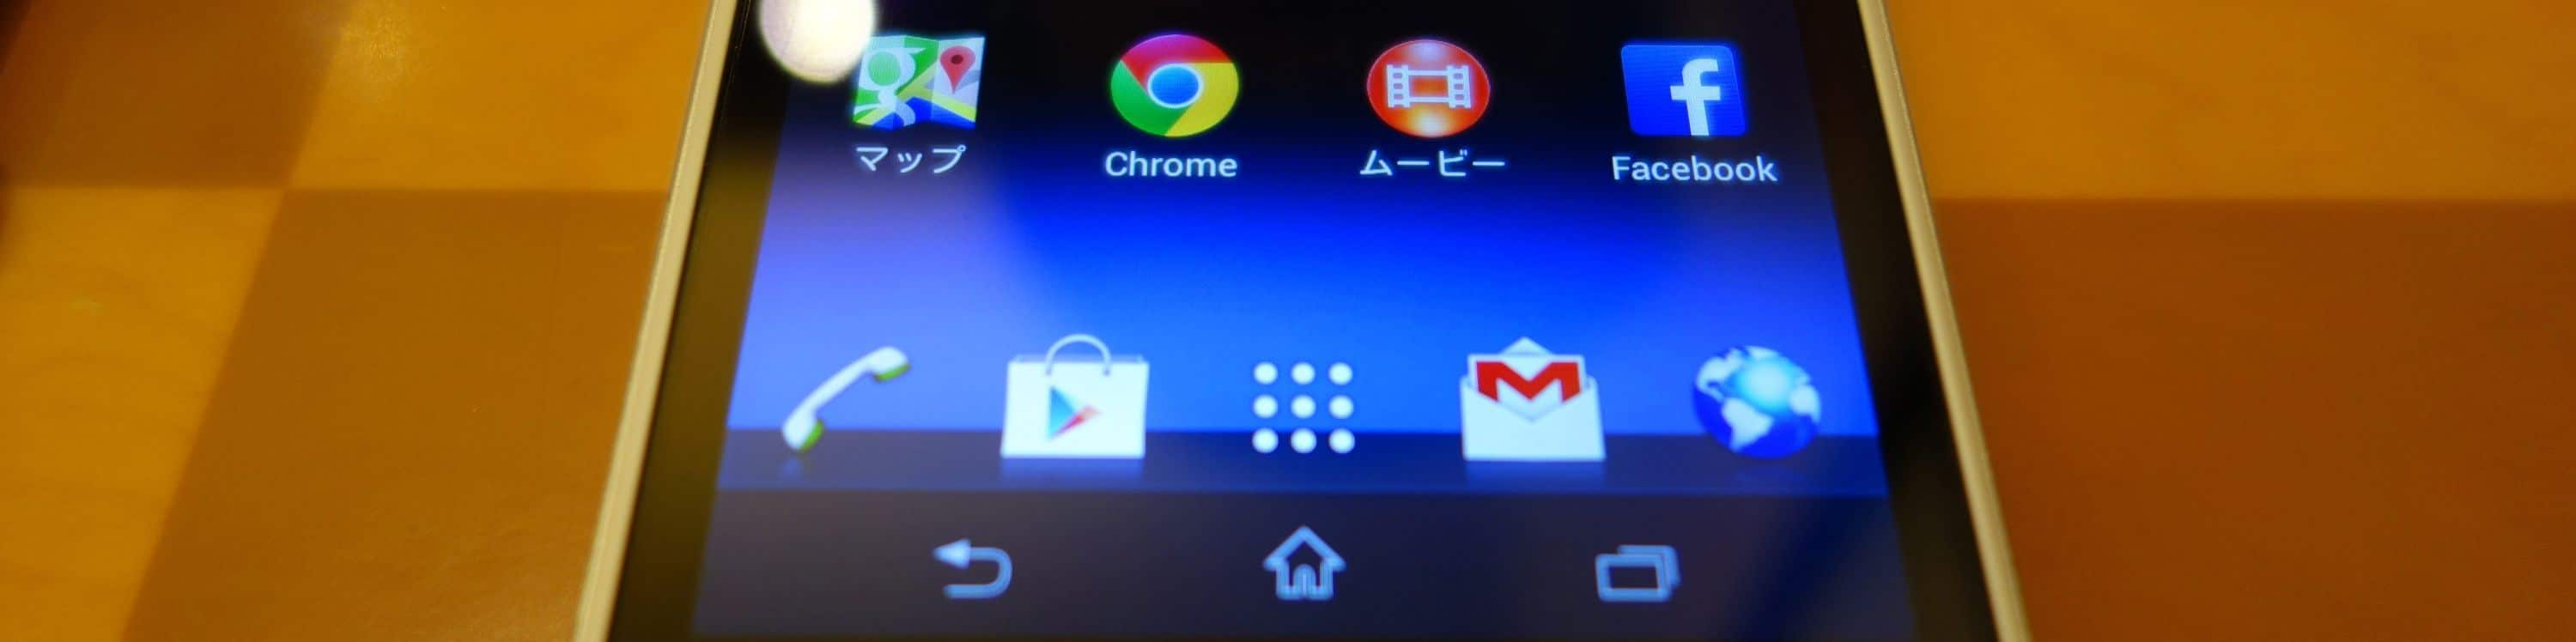 Xperia-Z1-f-display-lottery_4